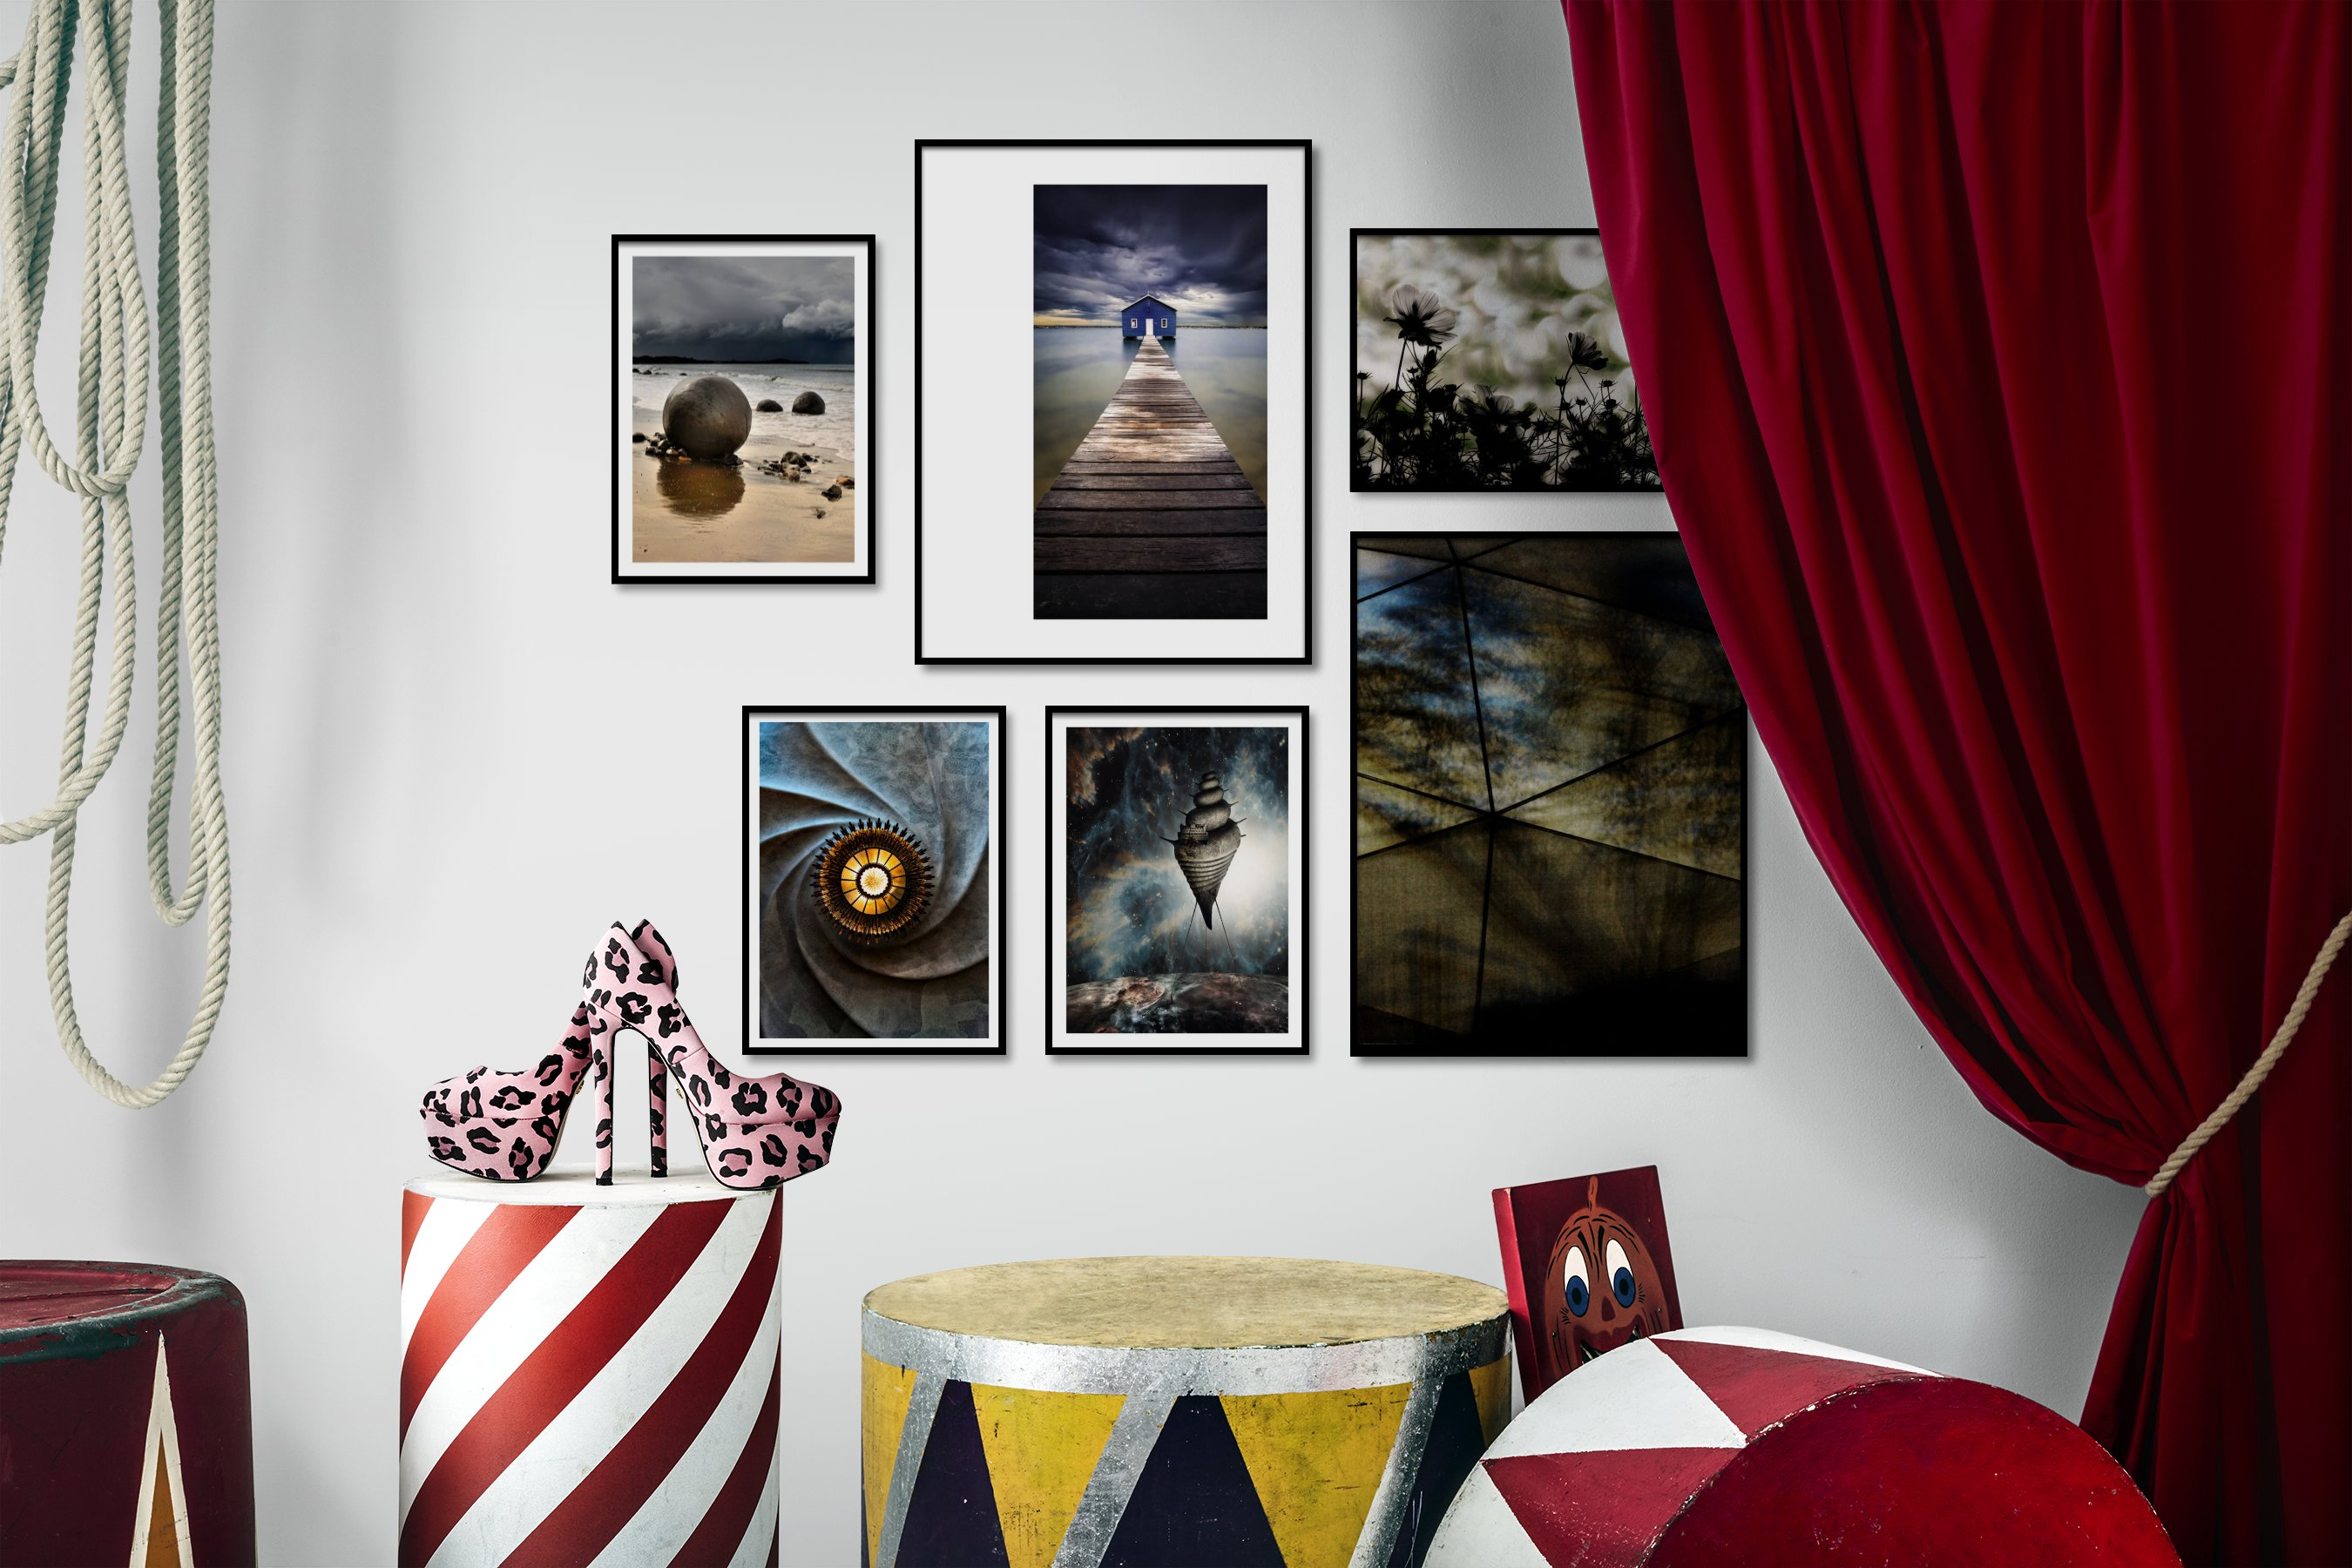 Gallery wall idea with six framed pictures arranged on a wall depicting Beach & Water, Mindfulness, Artsy, For the Moderate, and Flowers & Plants